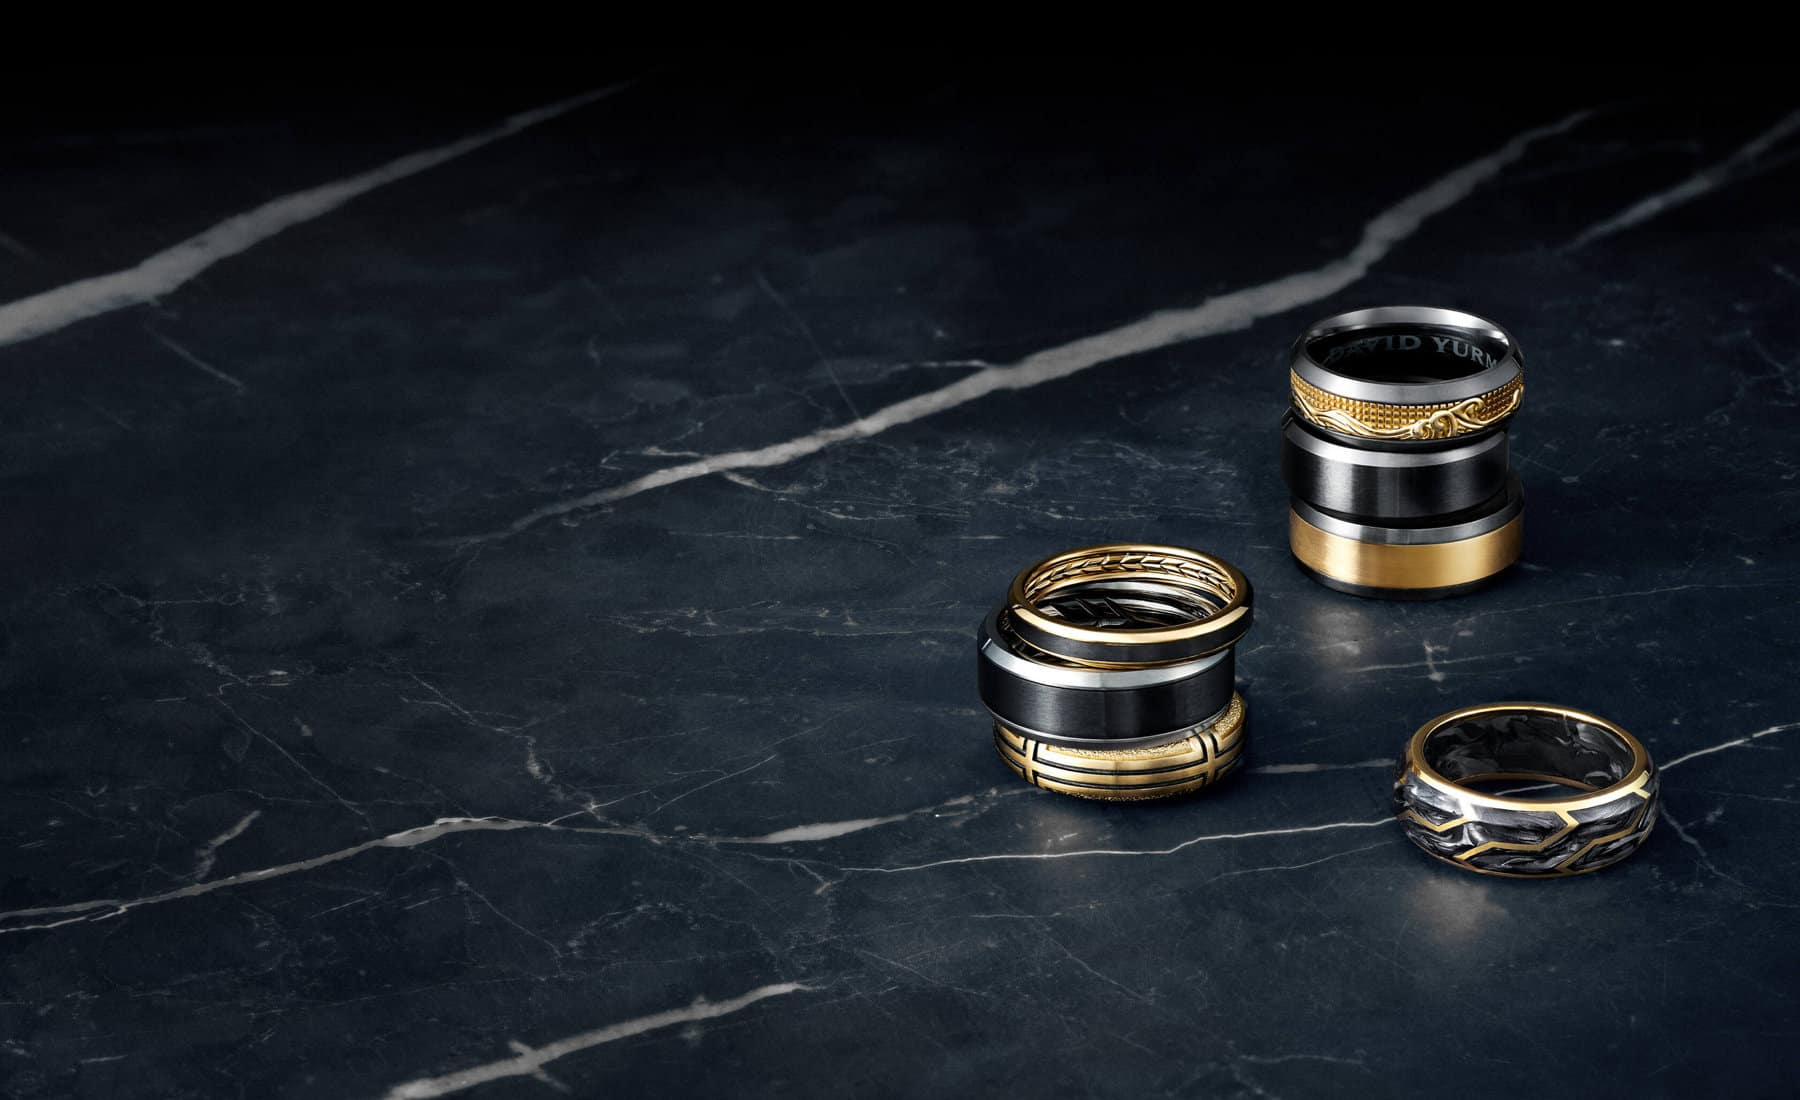 A color photograph shows three stacks of David Yurman's men's wedding bands from the Waves, Beveled and Forged Carbon and Southwest collections atop a dark, marbled surface. Each is crafted from black titanium and 18K yellow gold, black titanium, 18K yellow gold and forged carbon, 18K yellow gold or grey and black titanium.